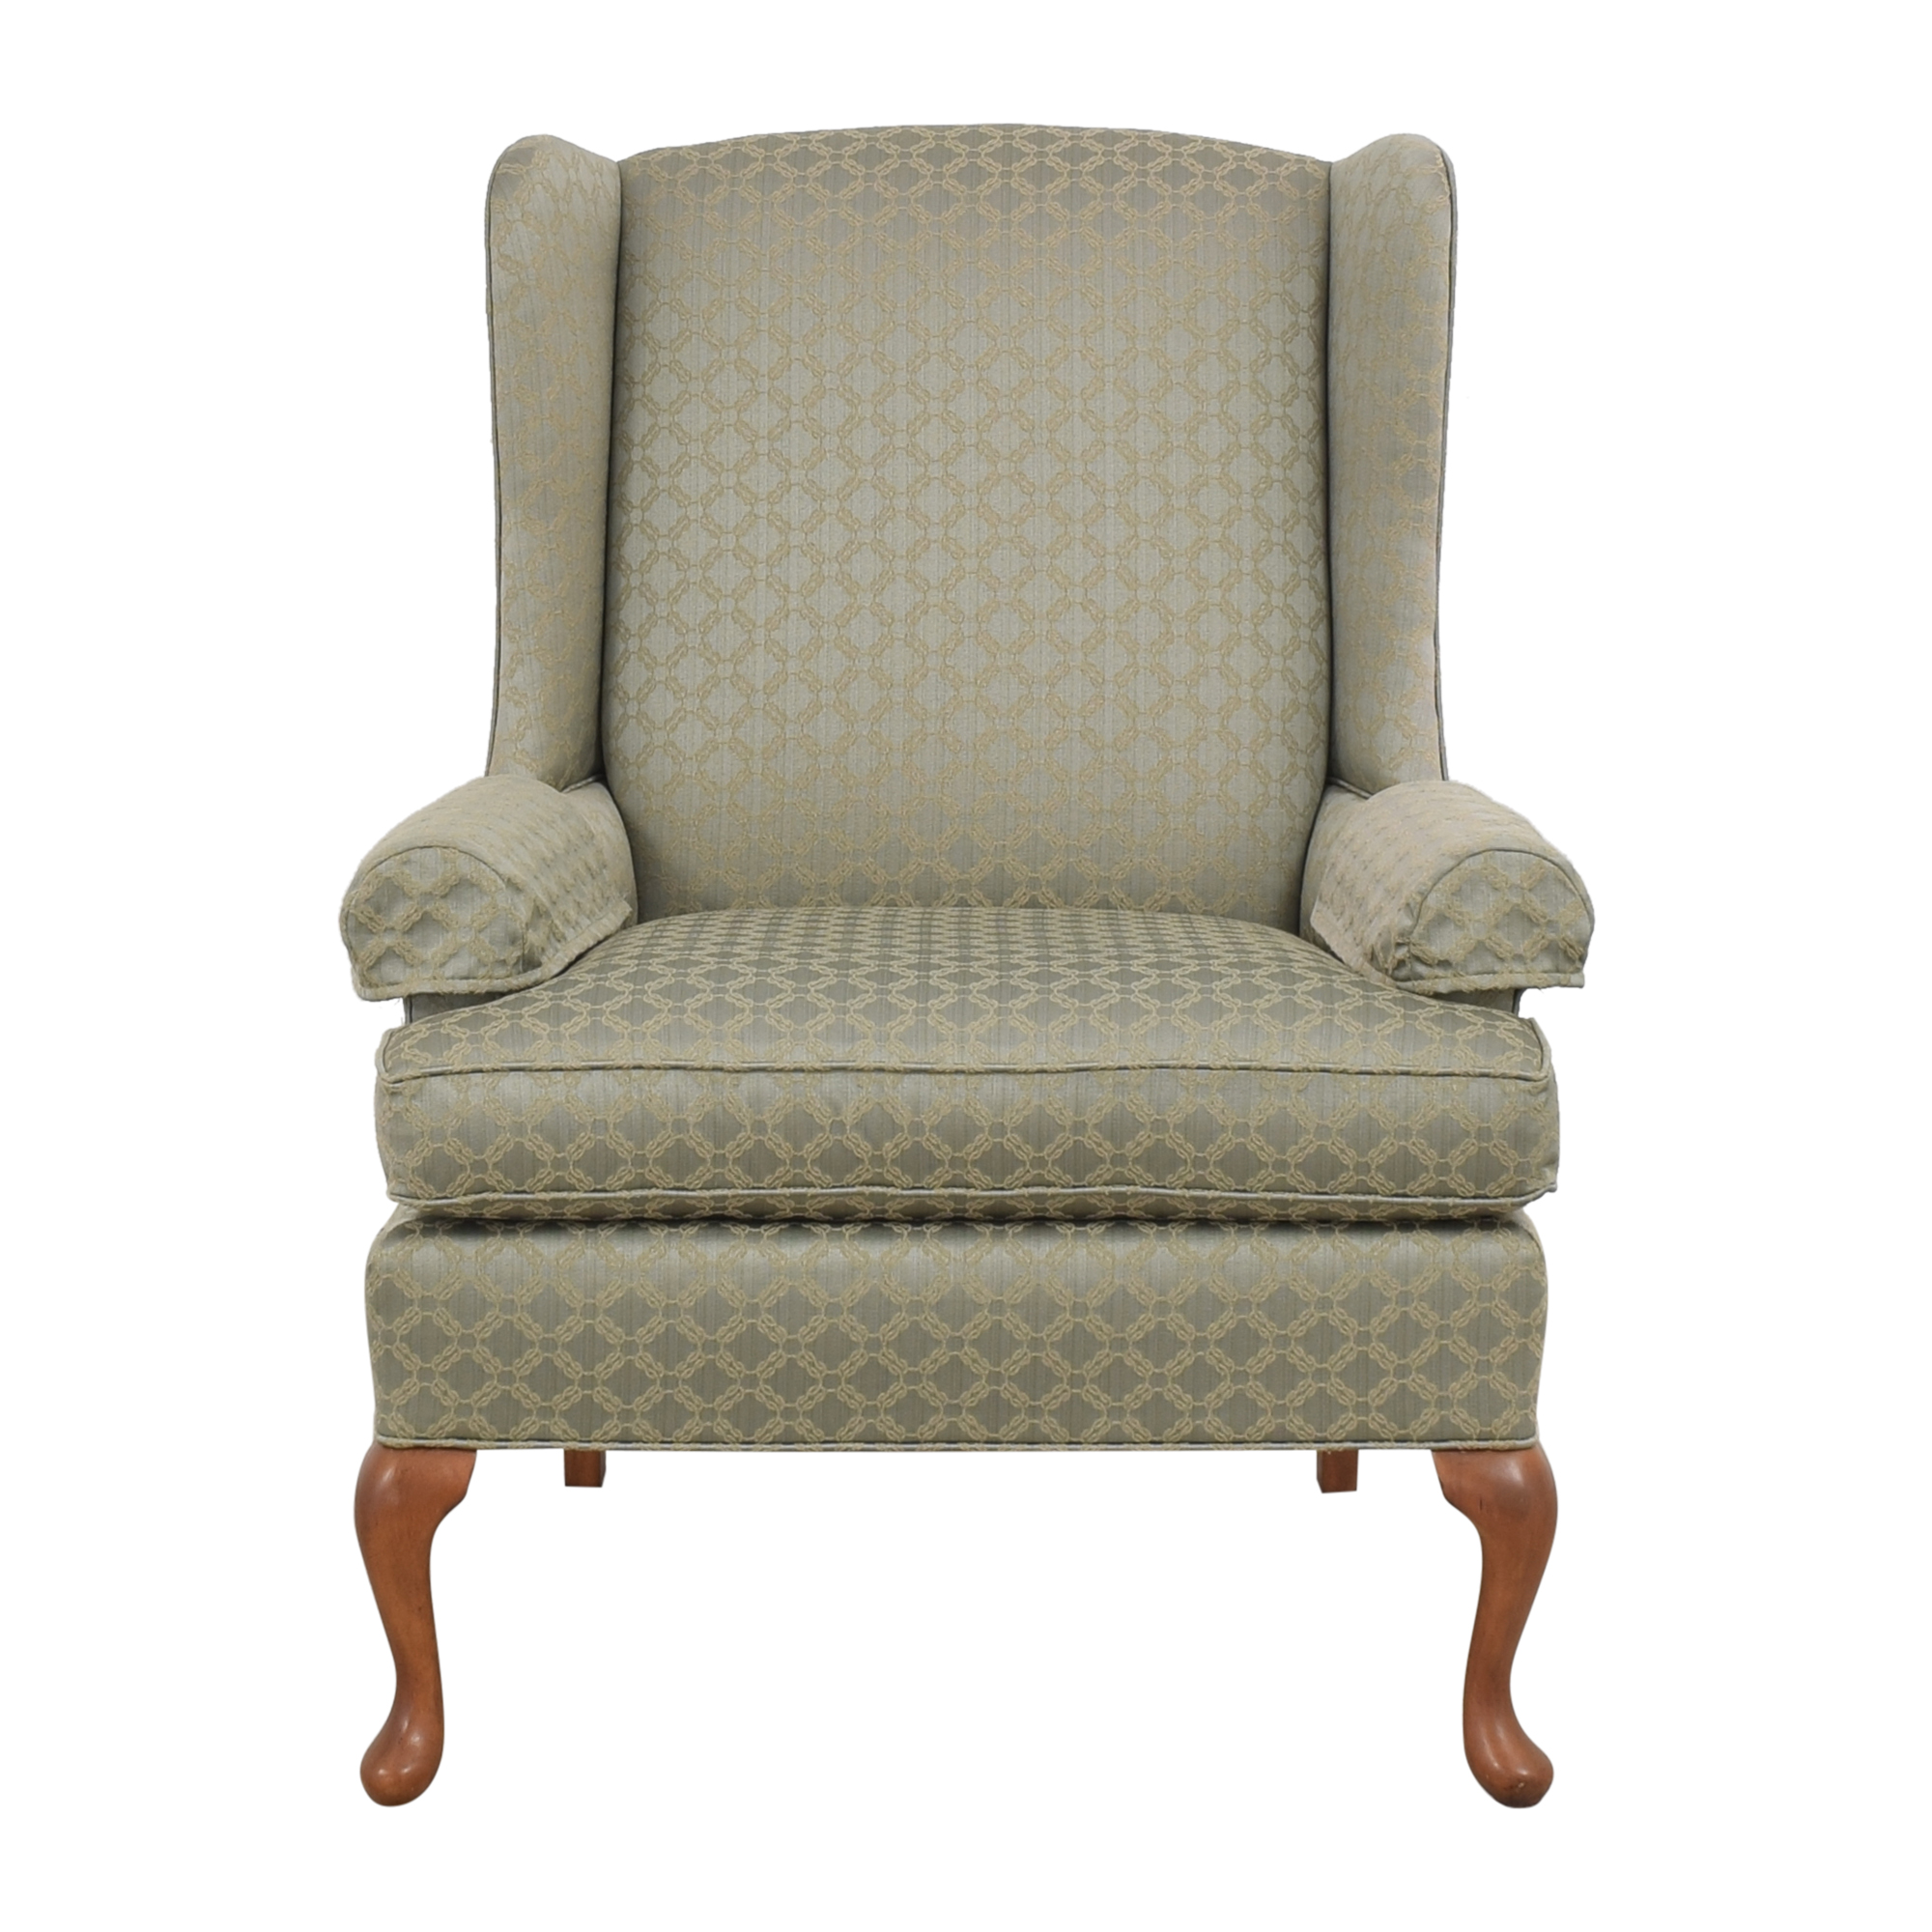 Thomasville Thomasville Wing Chair used